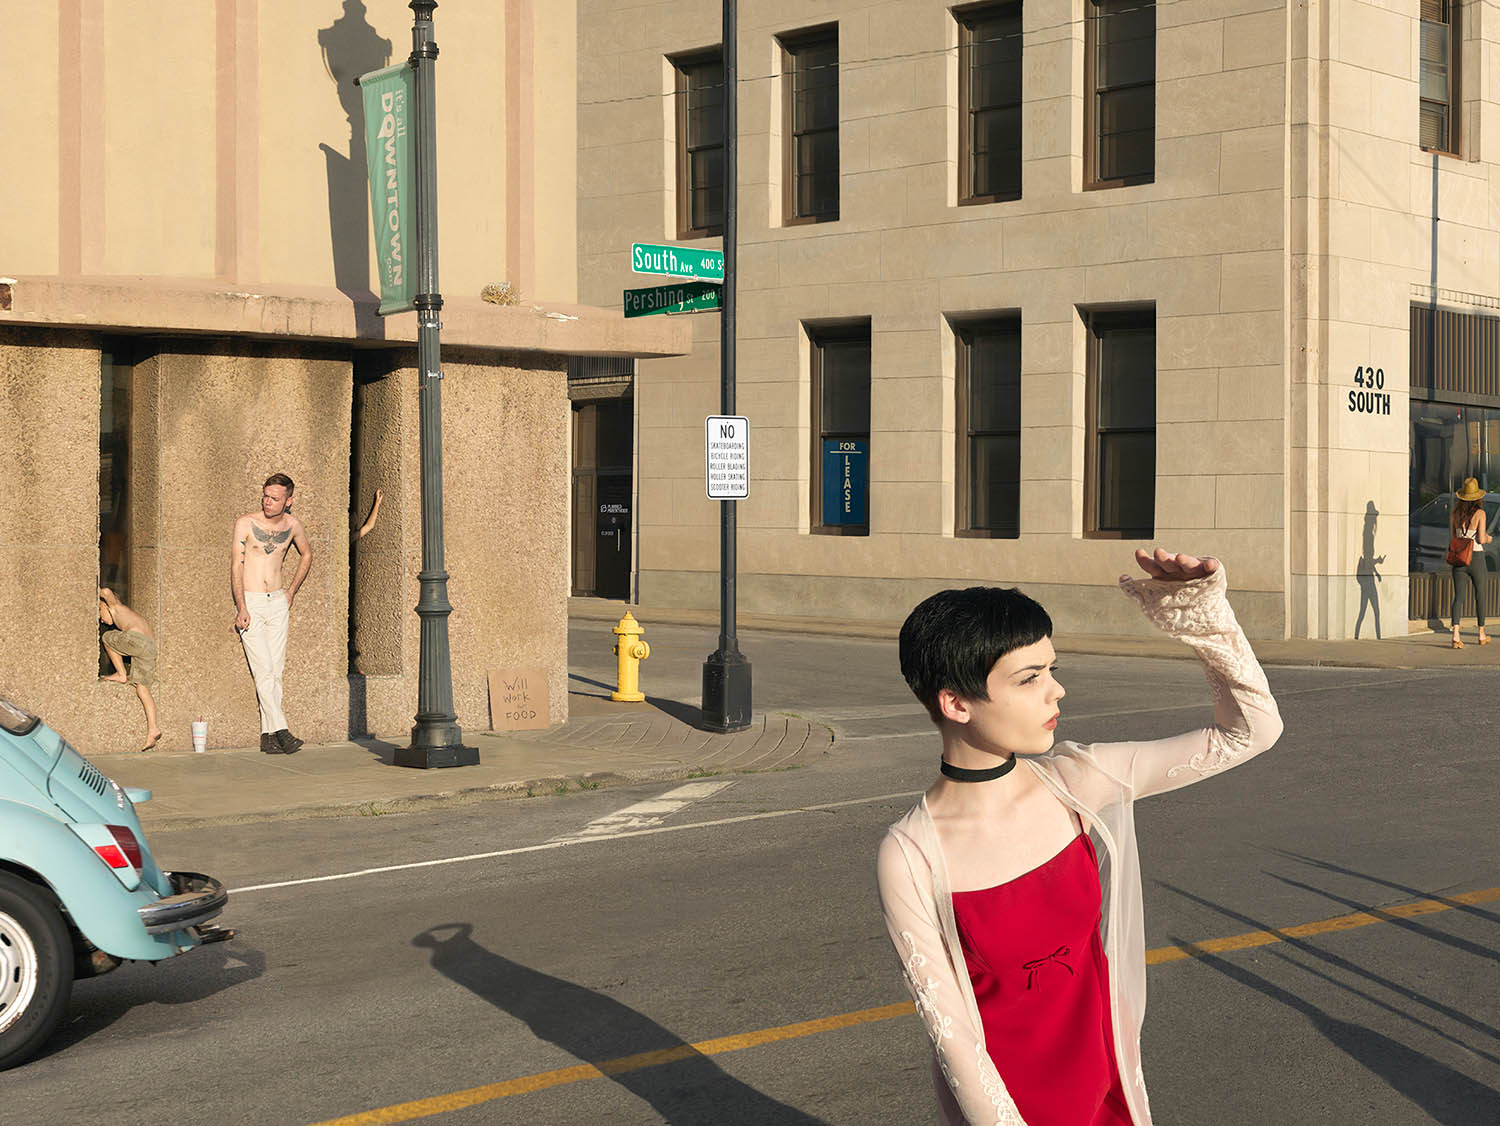 JULIE BLACKMON,  South & Perishing St.,   (Homegrown) , 2017